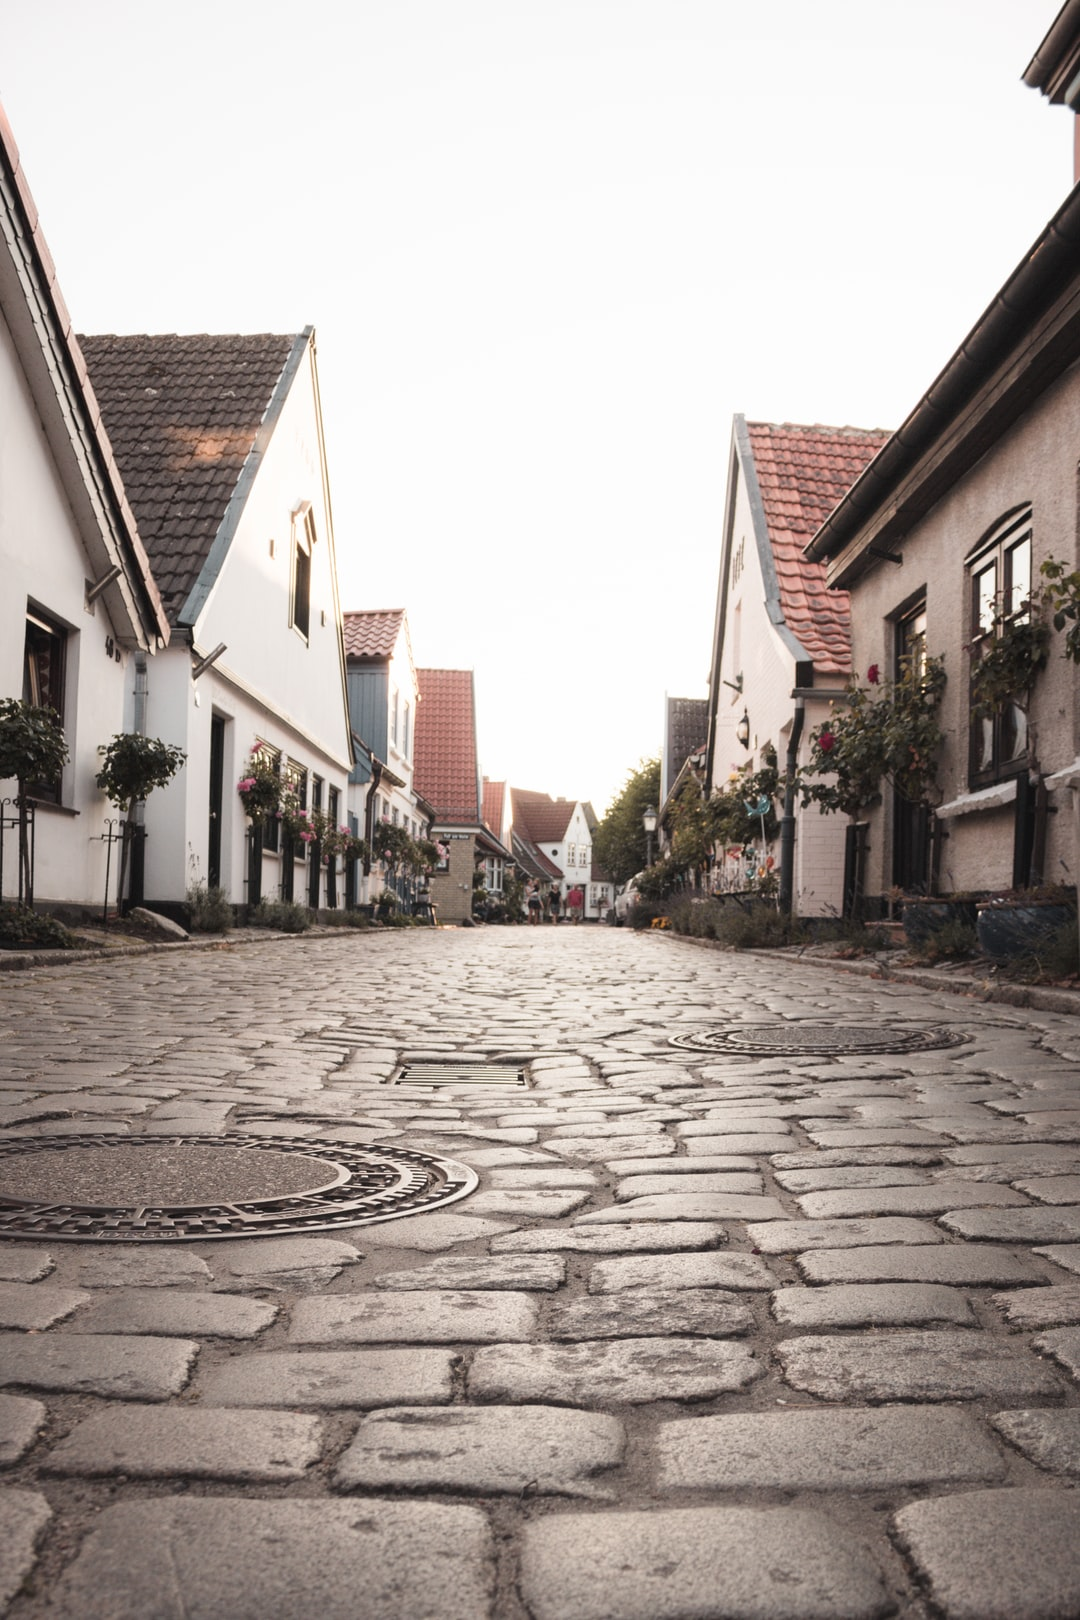 500 Town Pictures Hd Download Free Images On Unsplash